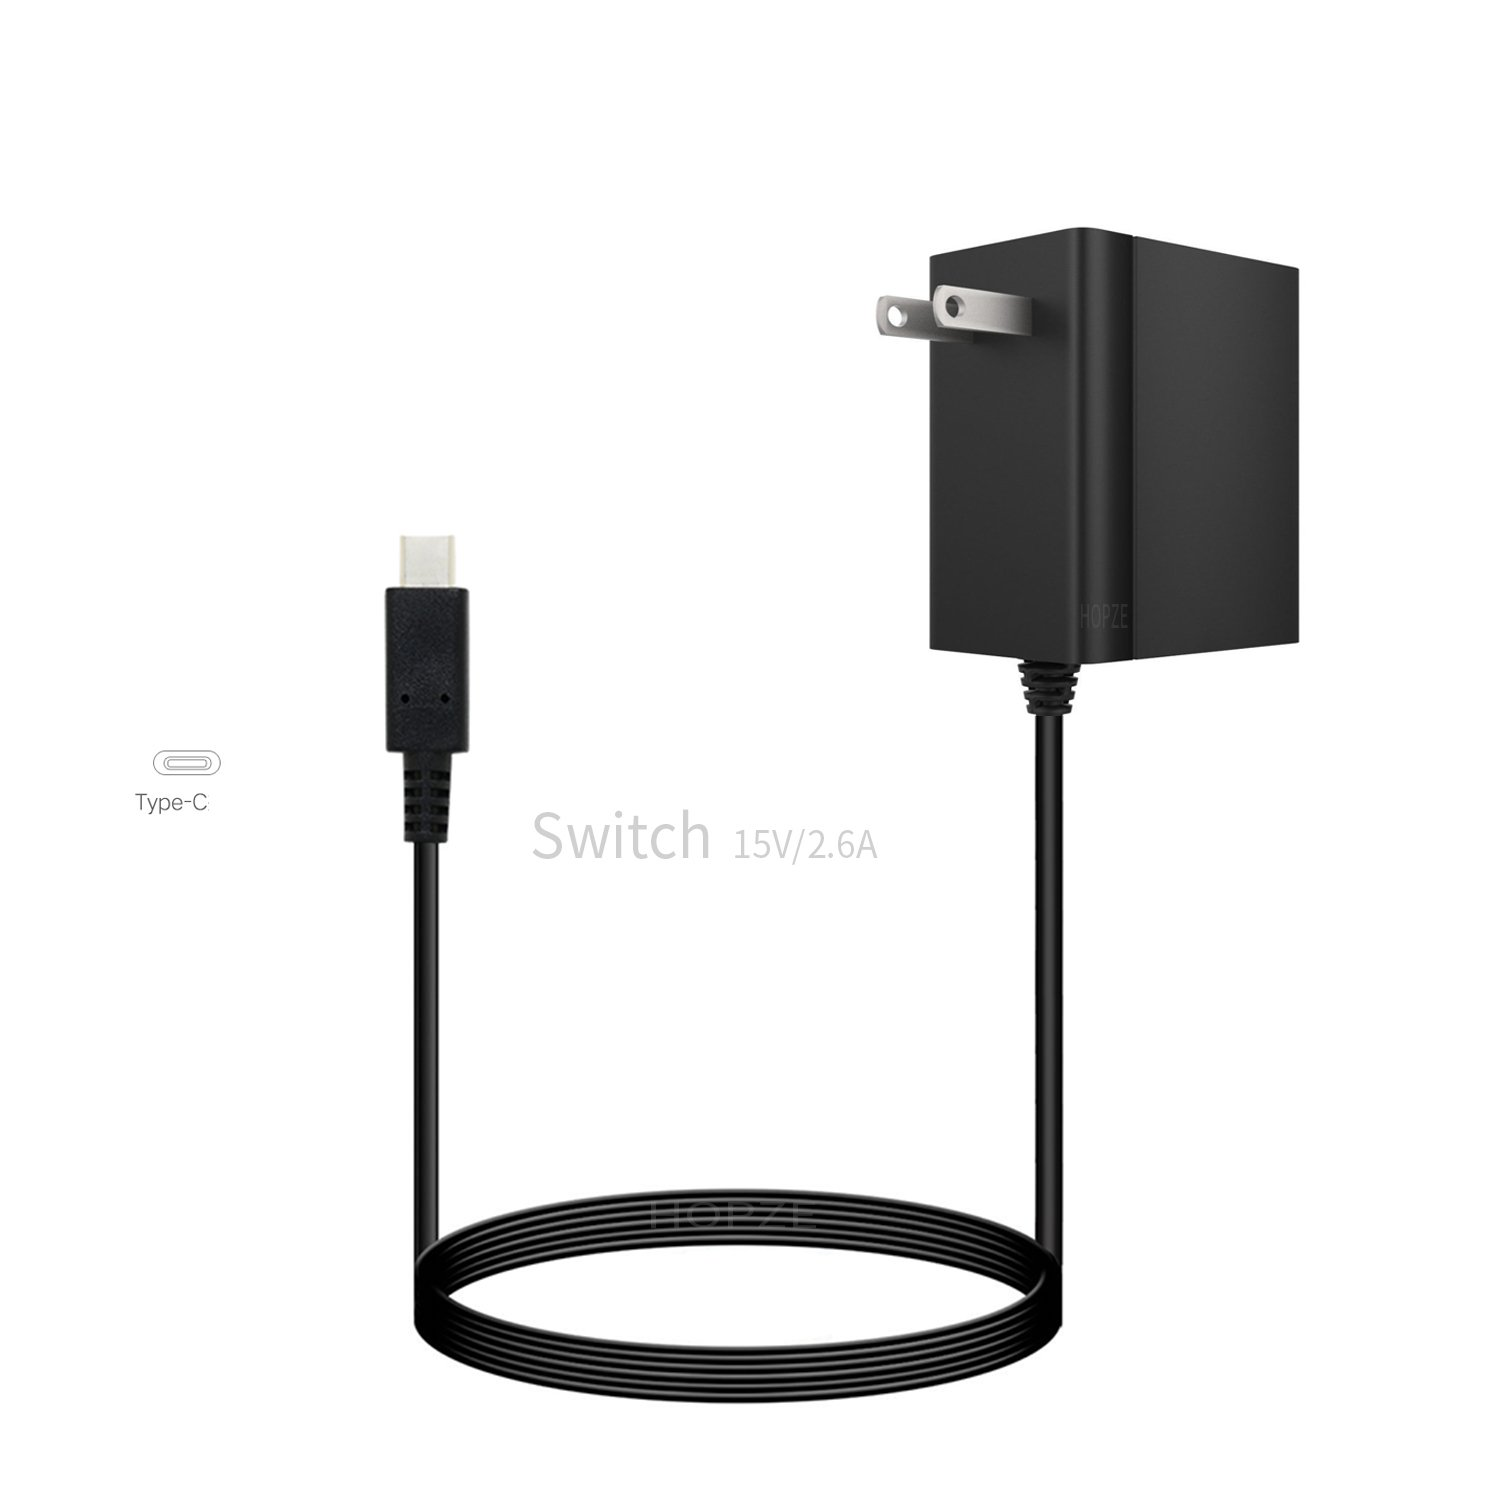 Nintendo Switch Charger AC Adapter Hopze Nintendo Switch Charger with 5 FT Power Supply Cord and Type C Fast Charging kit - 15V 2.6A AC Adapter for Nintendo Switch Supports TV Mode and Dock Station by Hopze (Image #1)